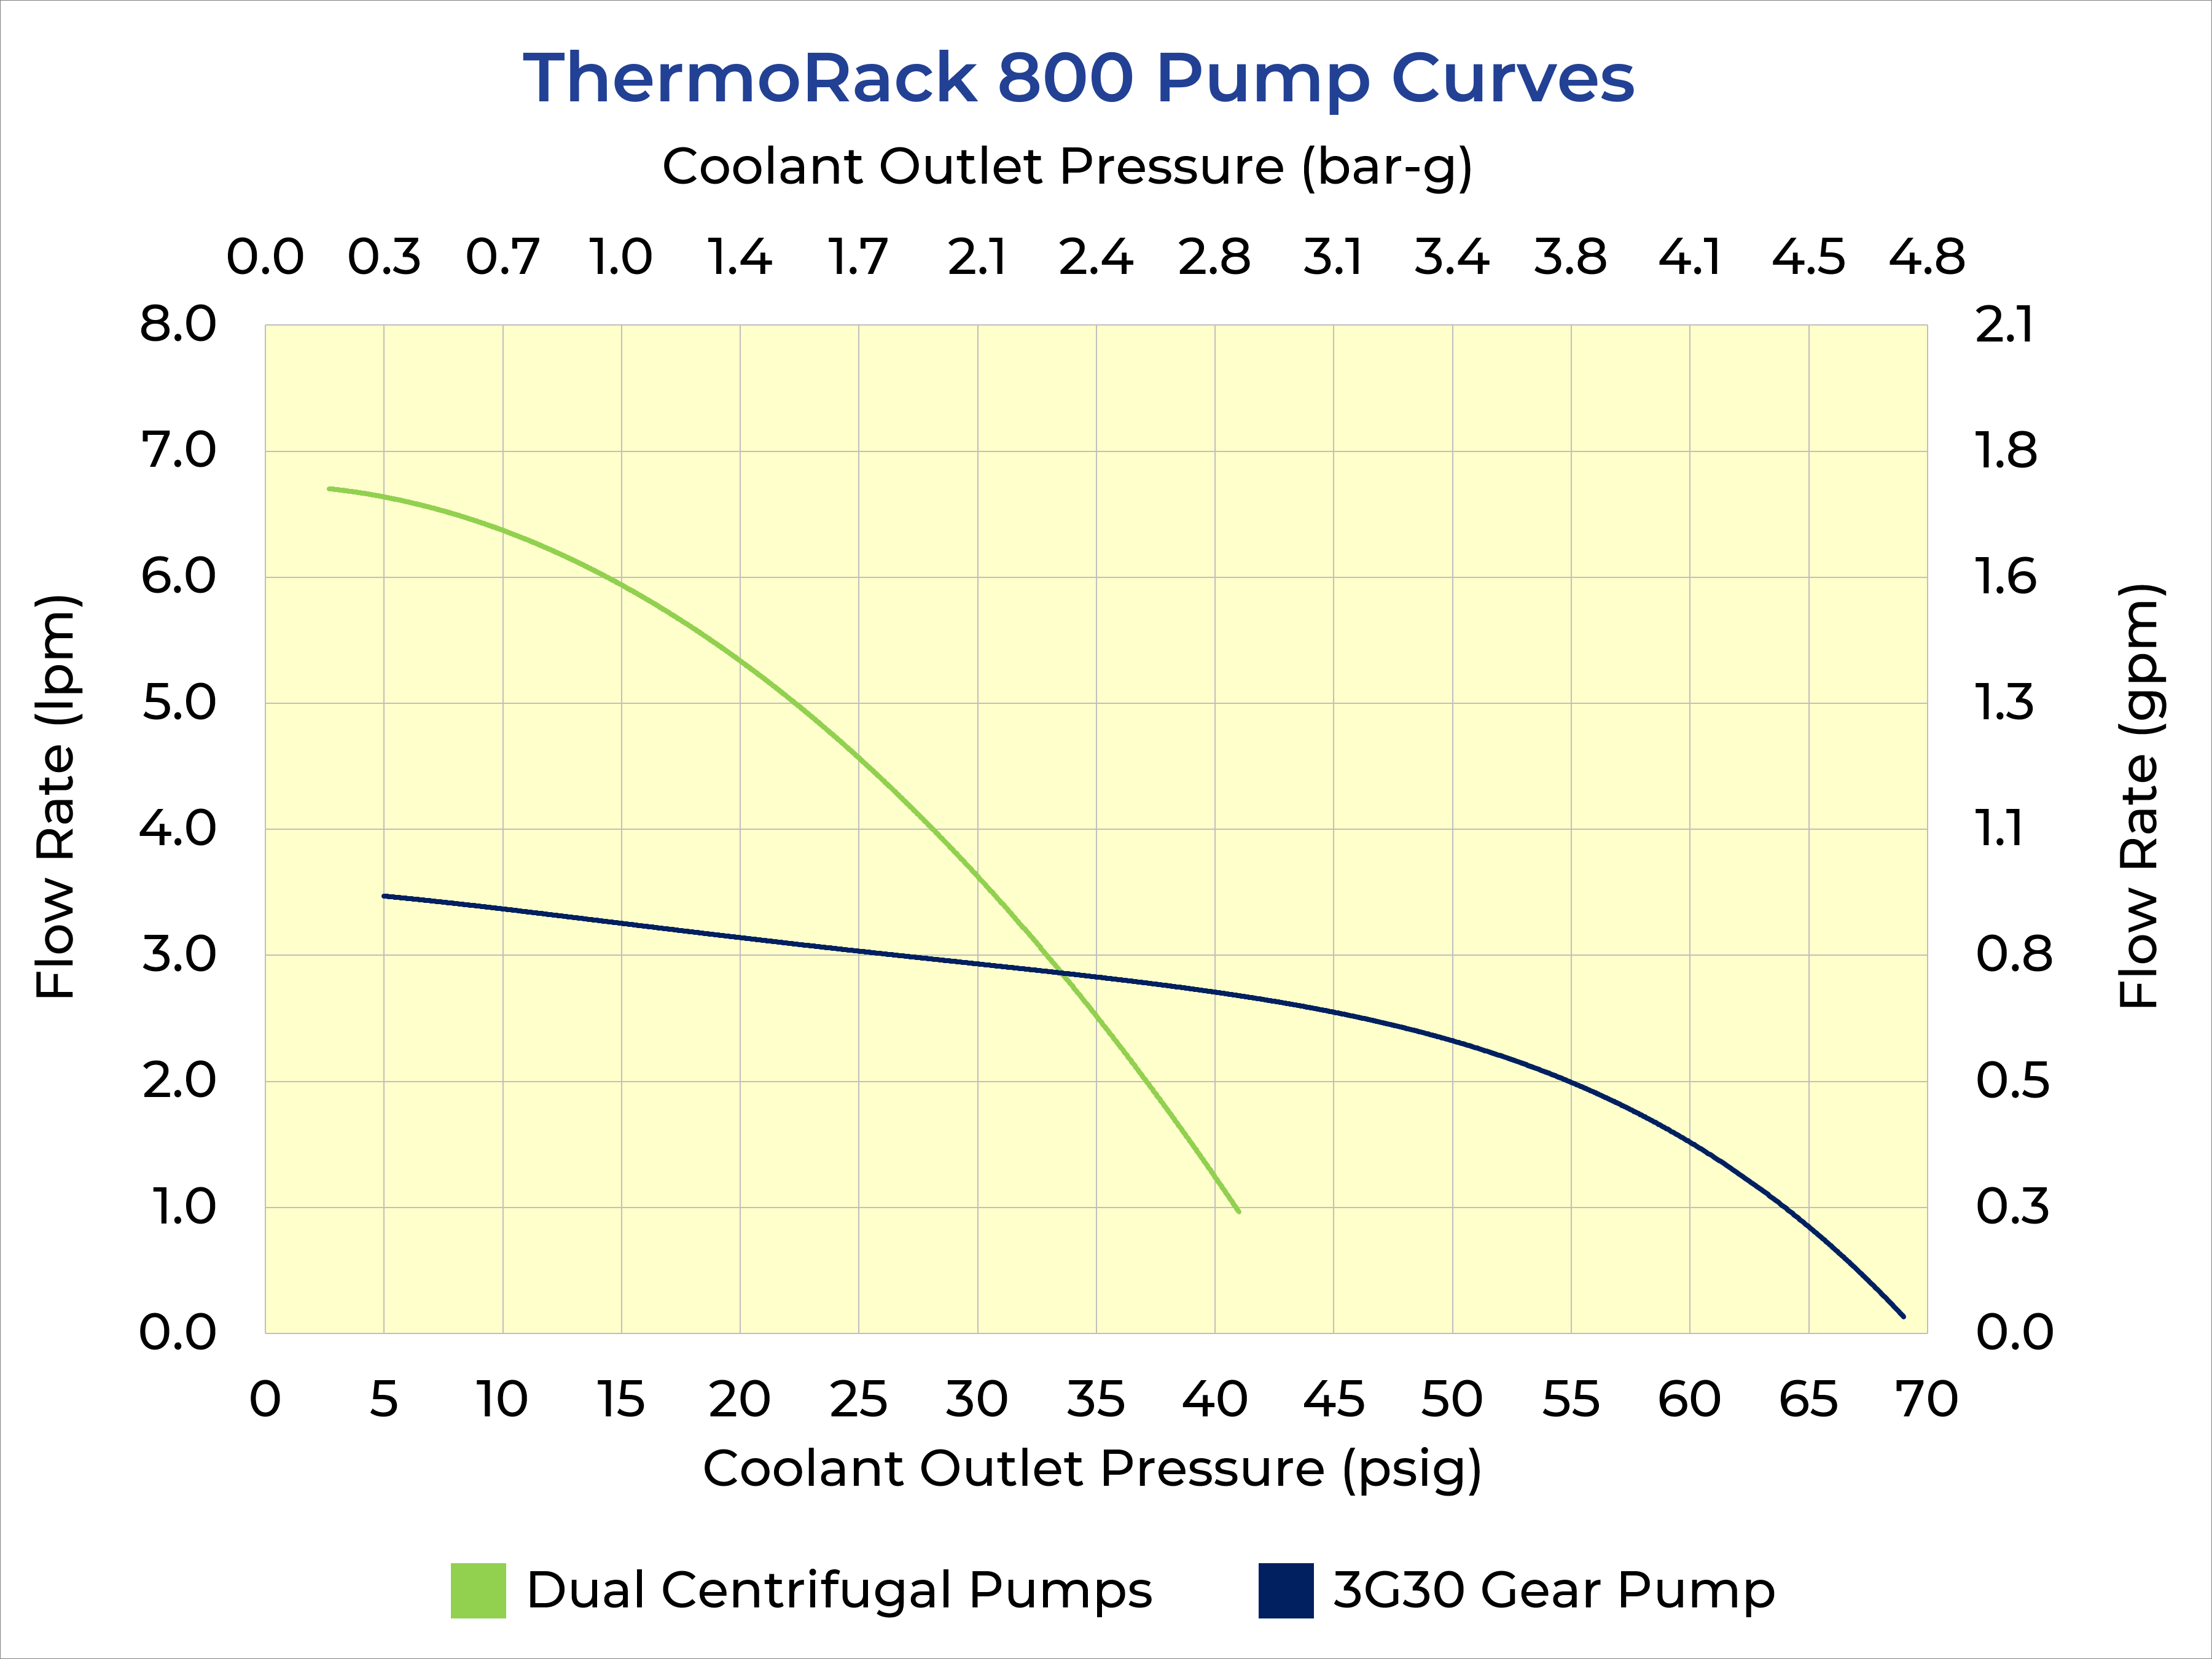 ThermoRack 800 Pump Curves